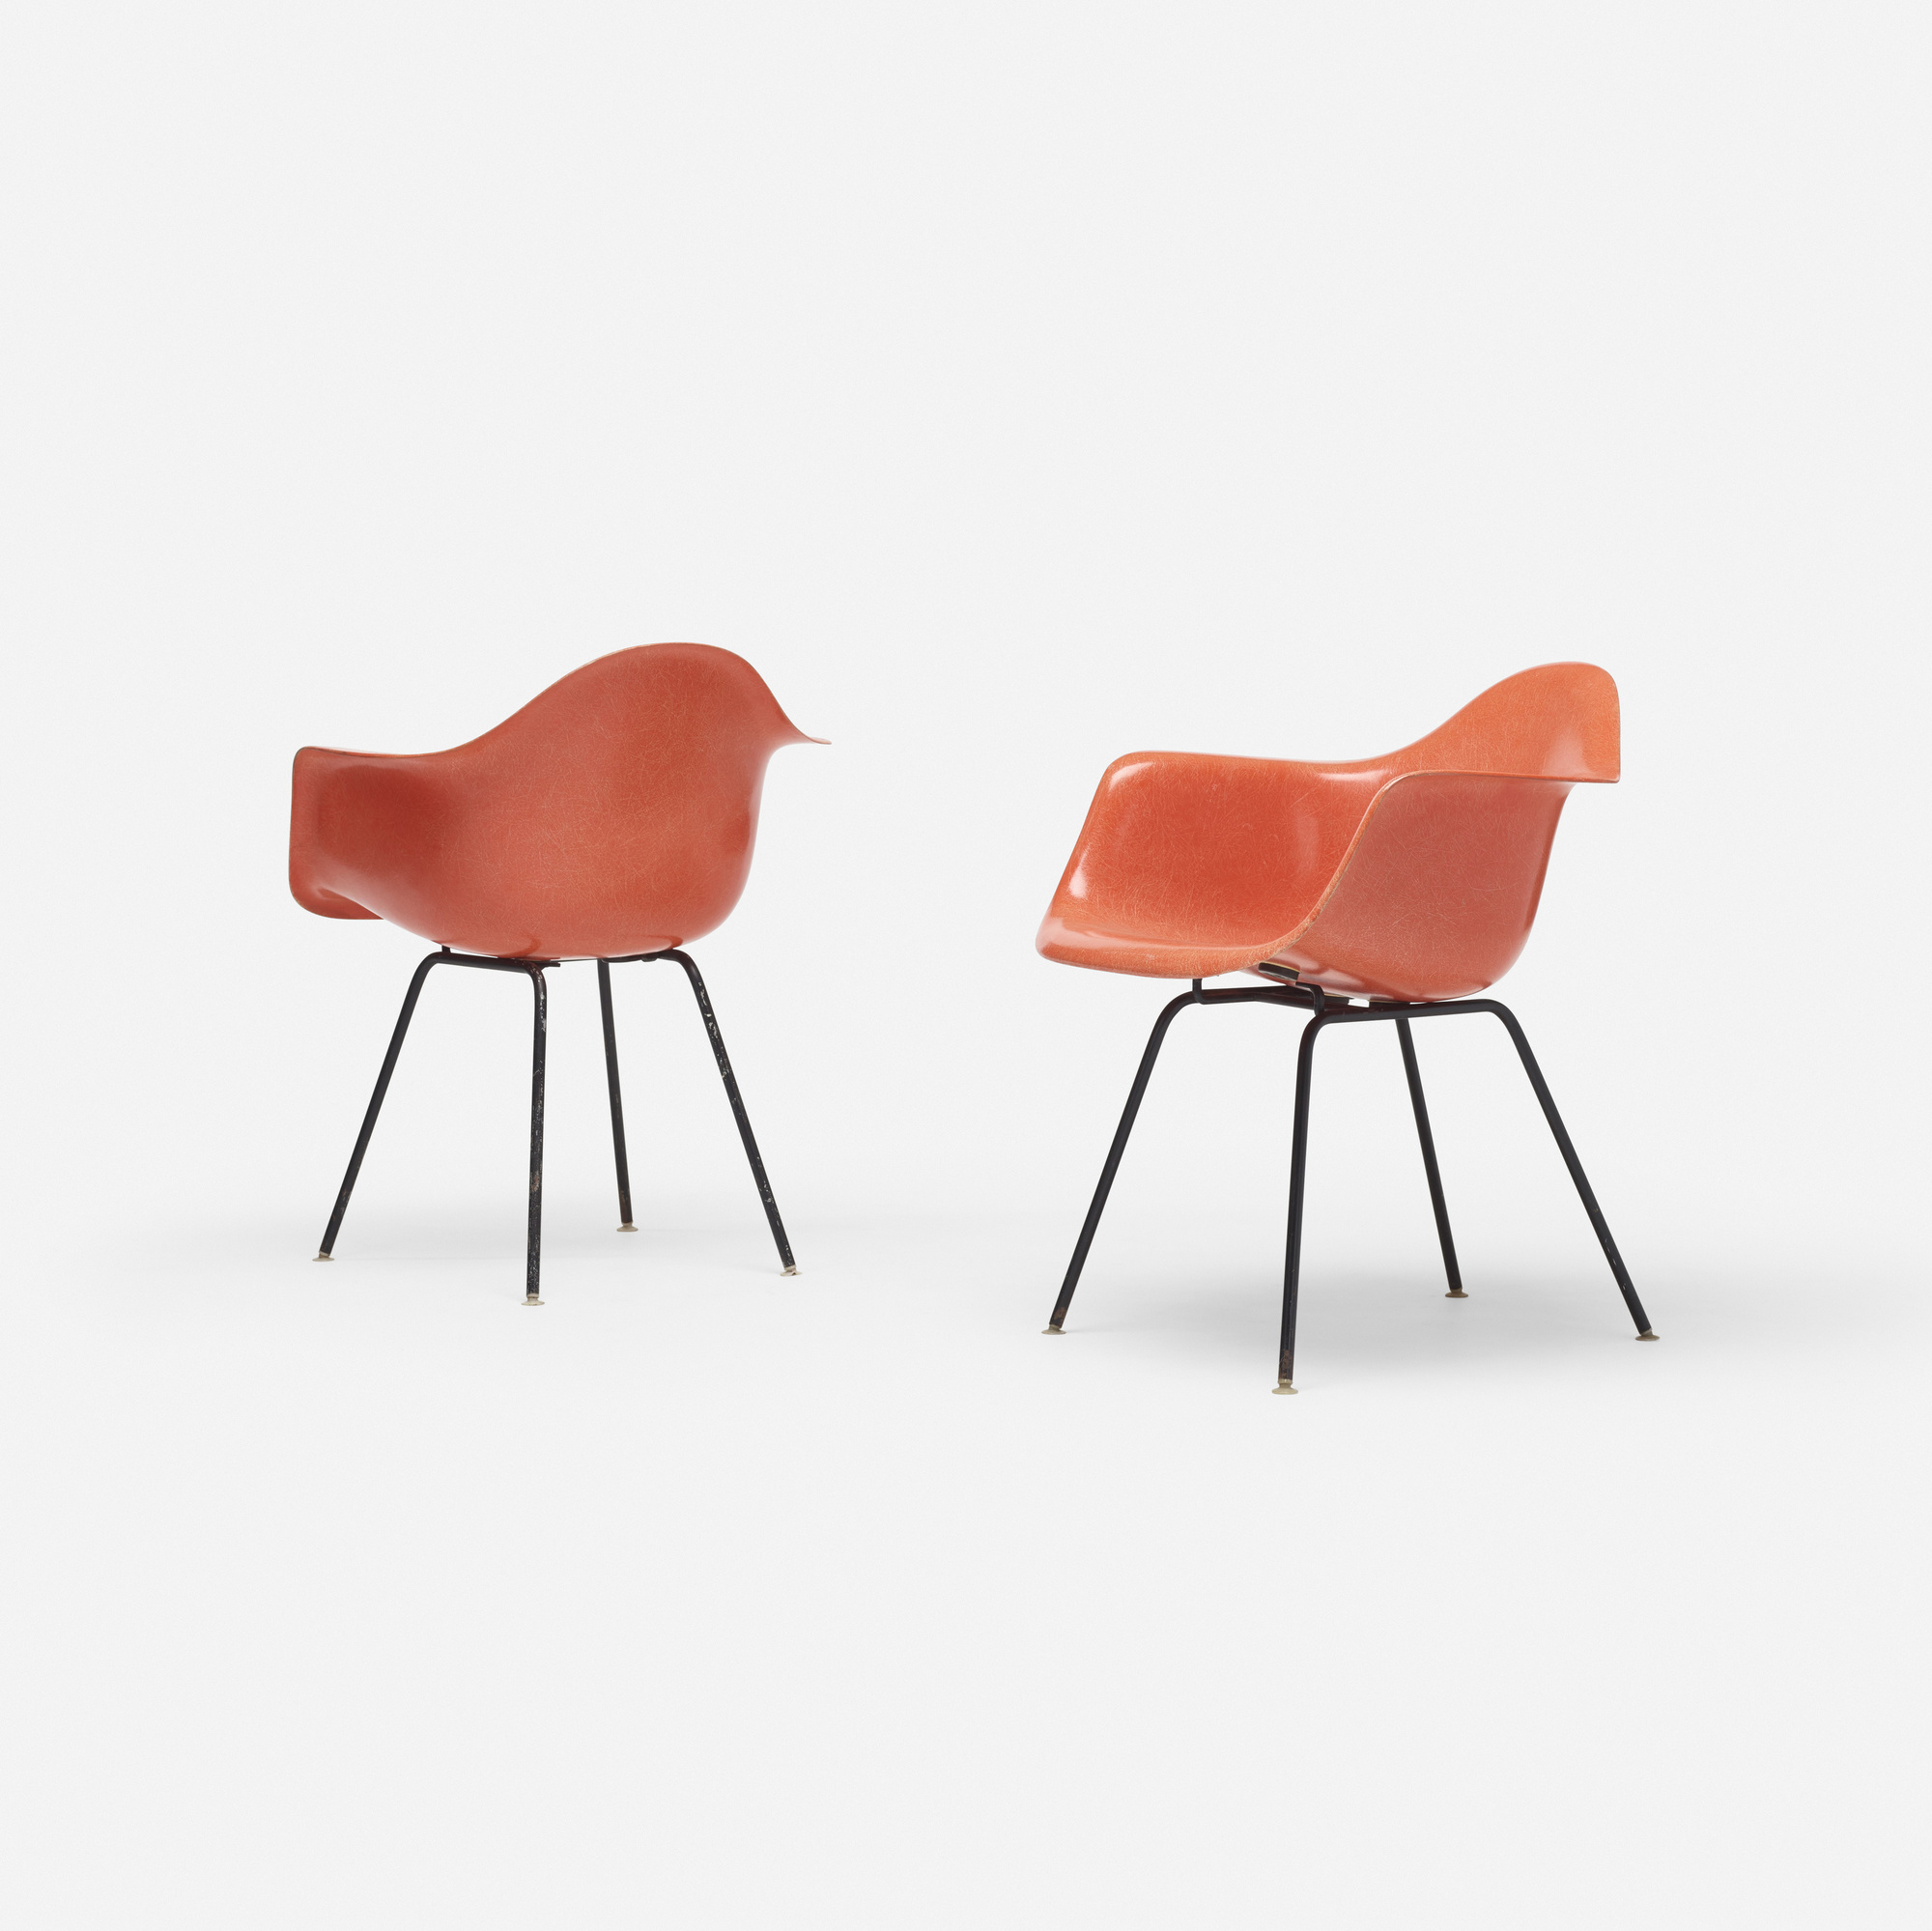 263: Charles and Ray Eames / DAXs, pair (2 of 3)